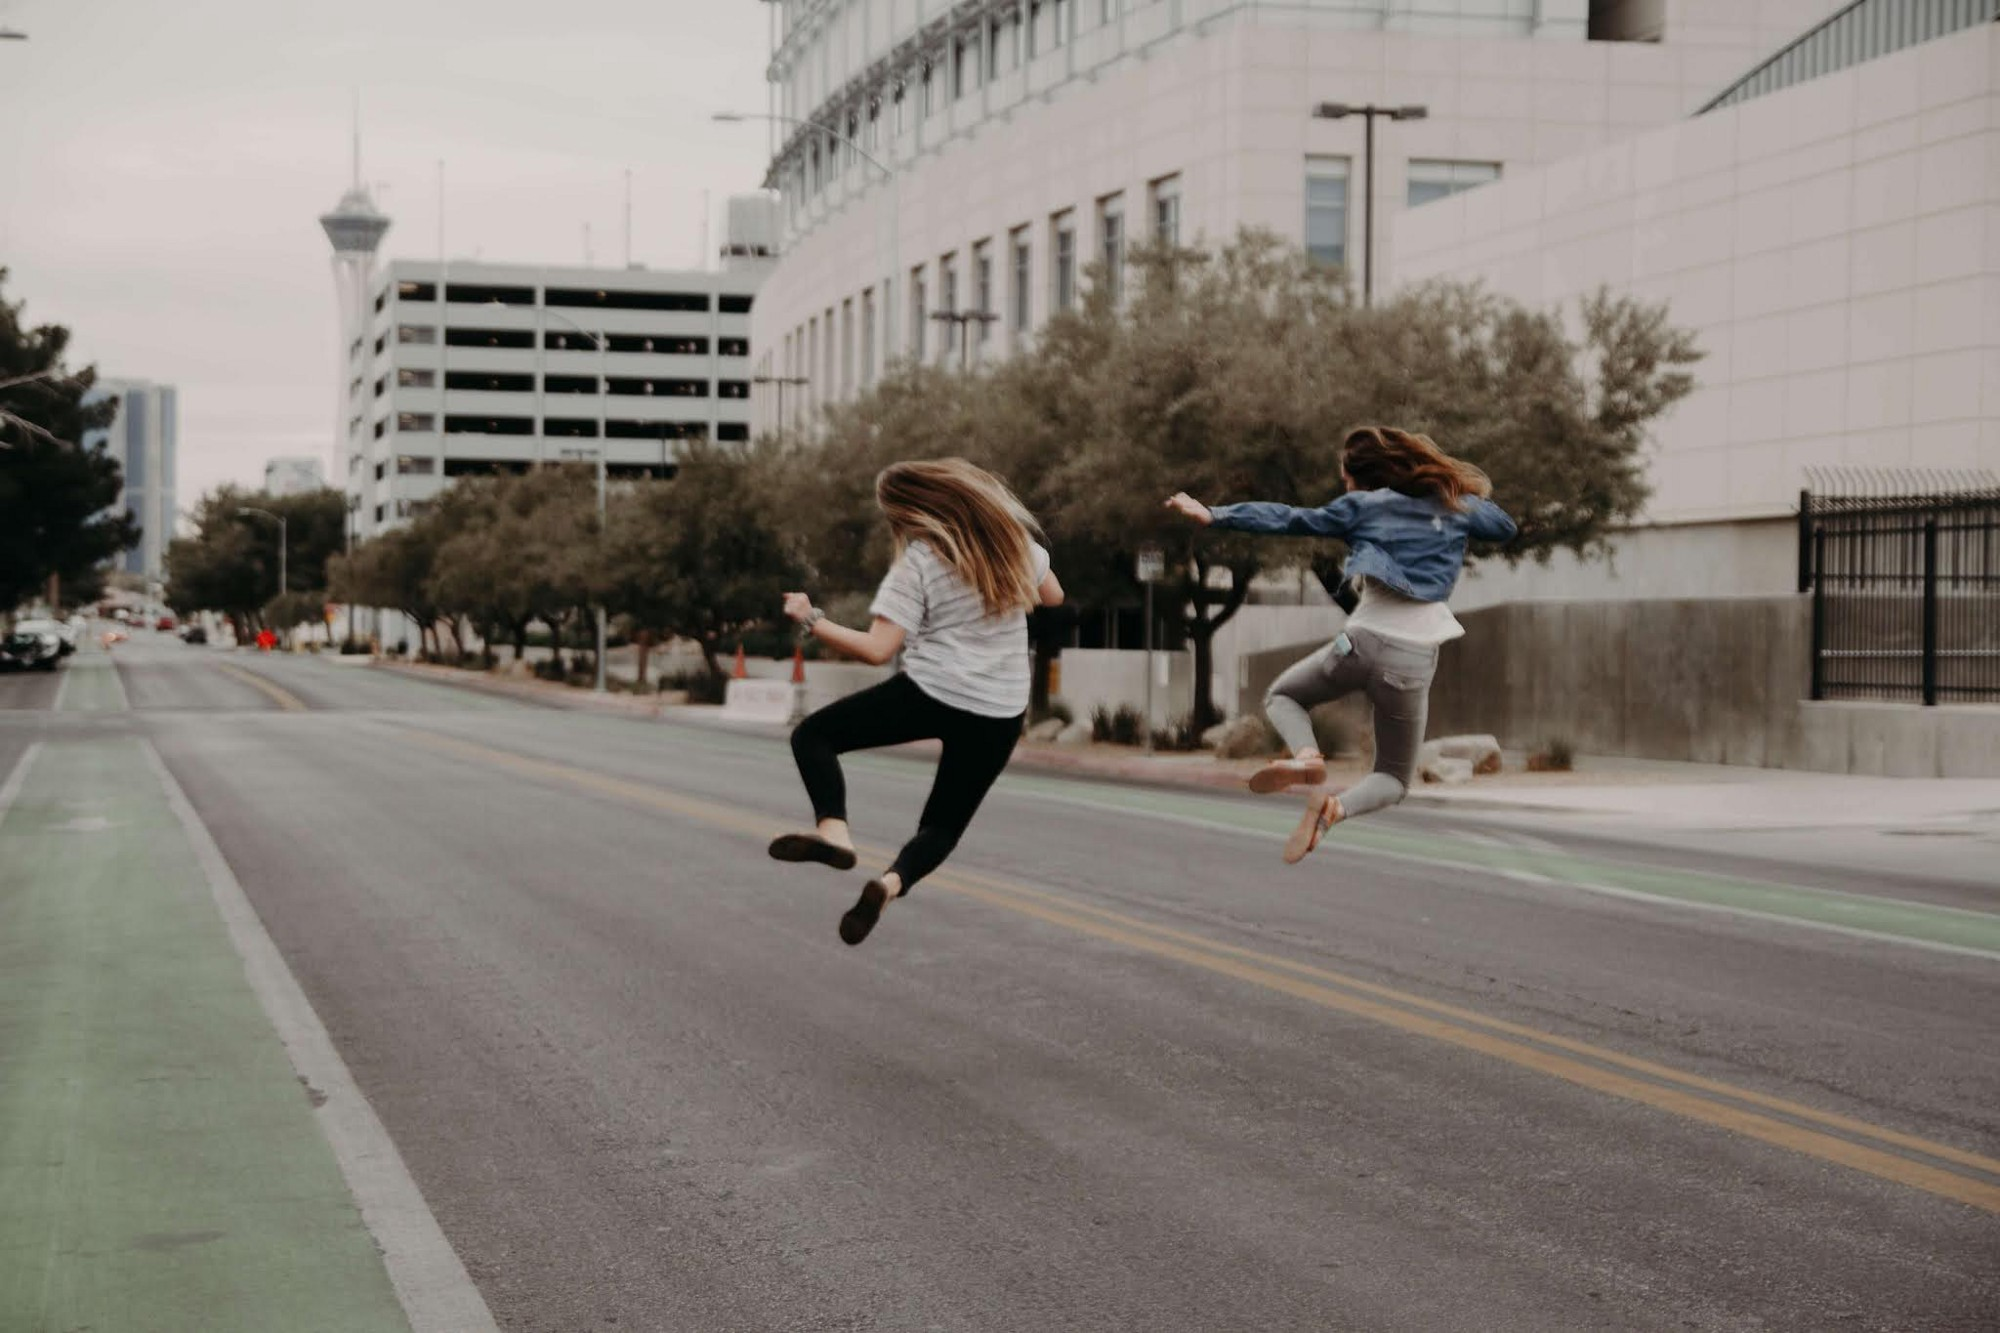 two girls jumping in the air in the middle of city road, they look like they succeeded